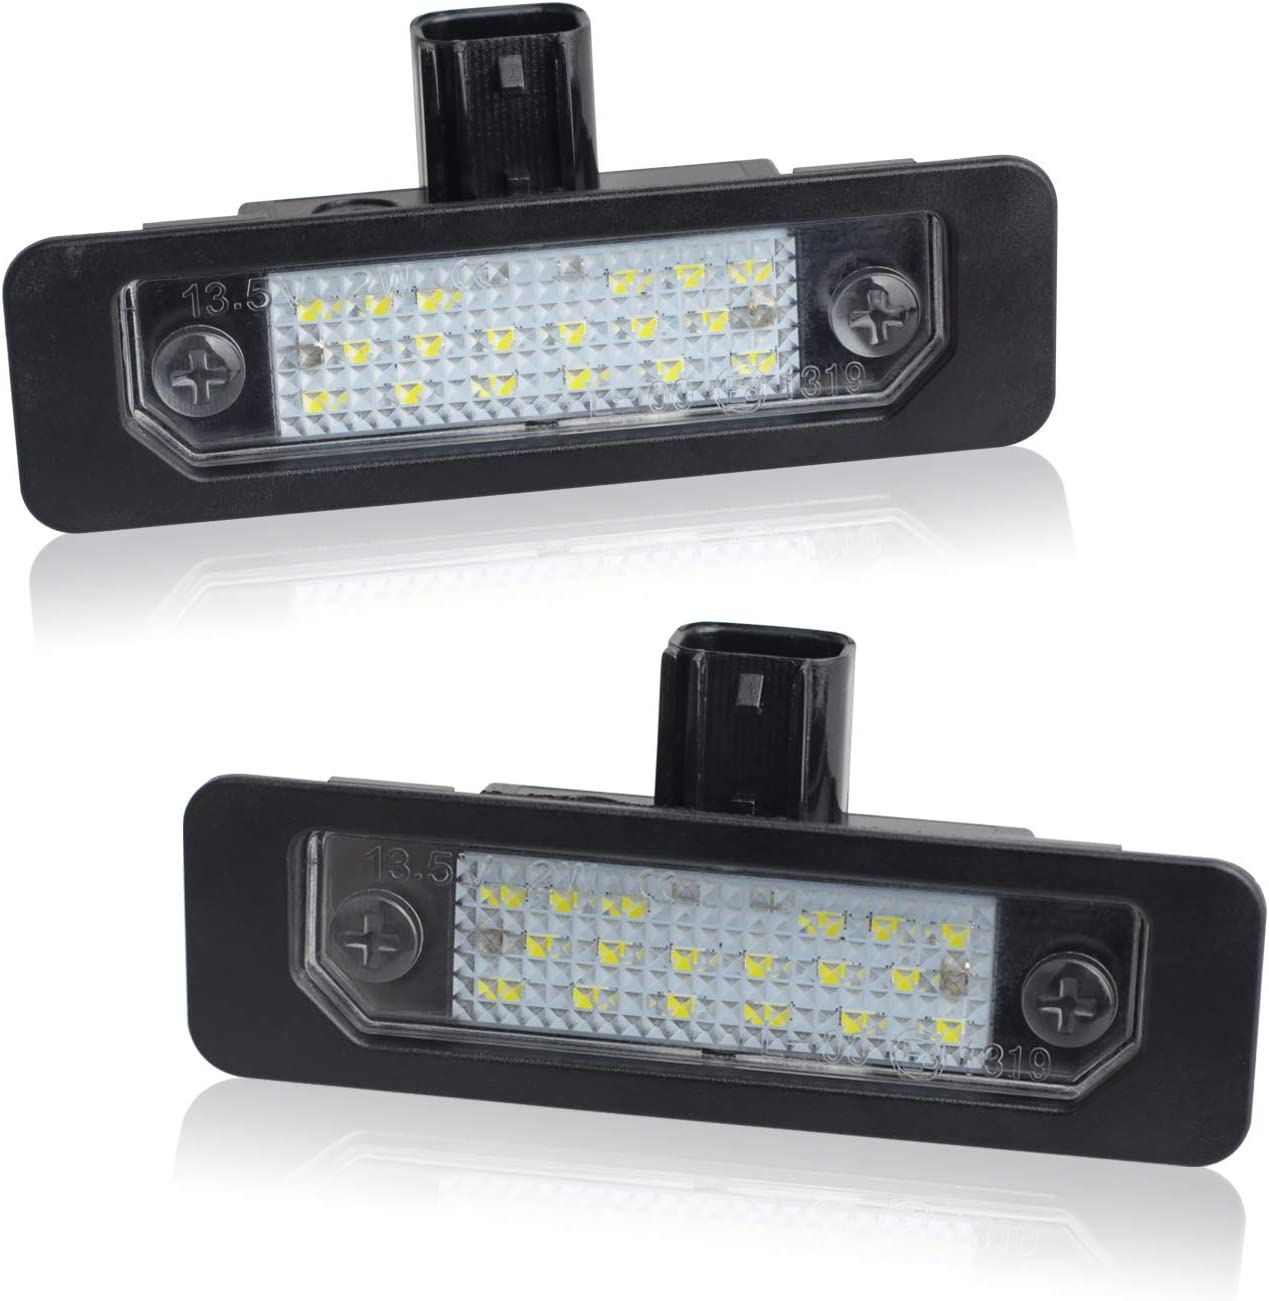 RUXIFEY LED License Plate Light Lamps to 20 2009 Compatible Cheap mail order Max 40% OFF sales with